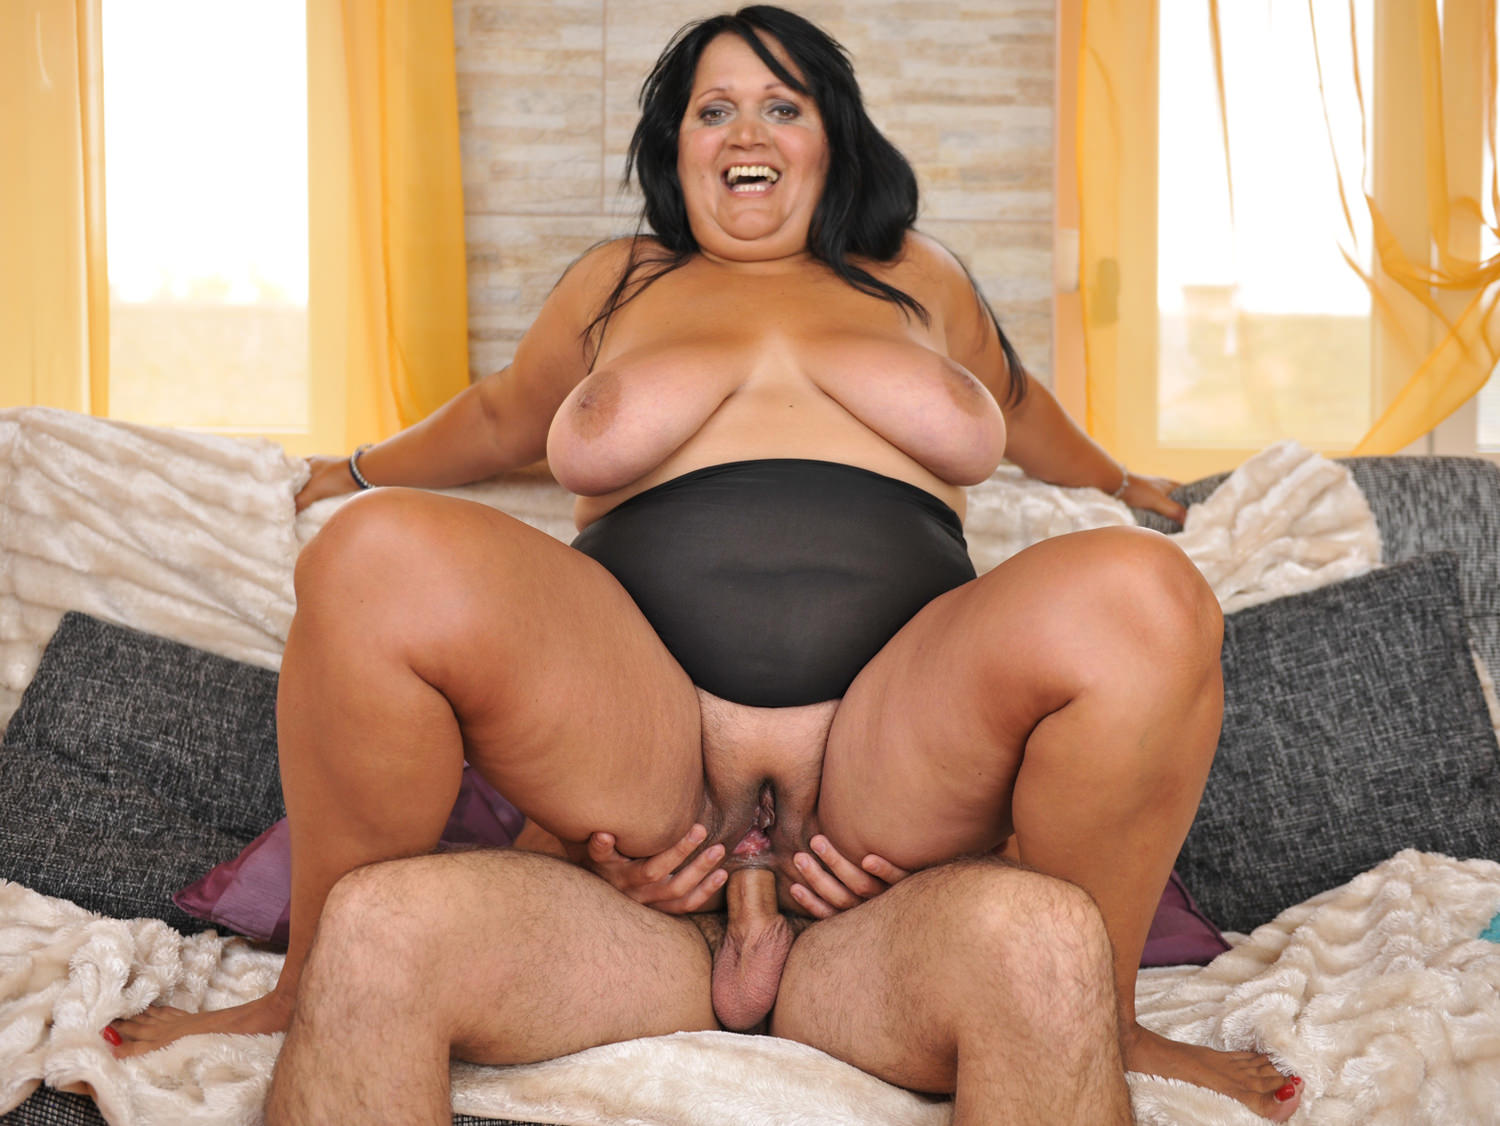 Bbw stockings spread pussy hd something is